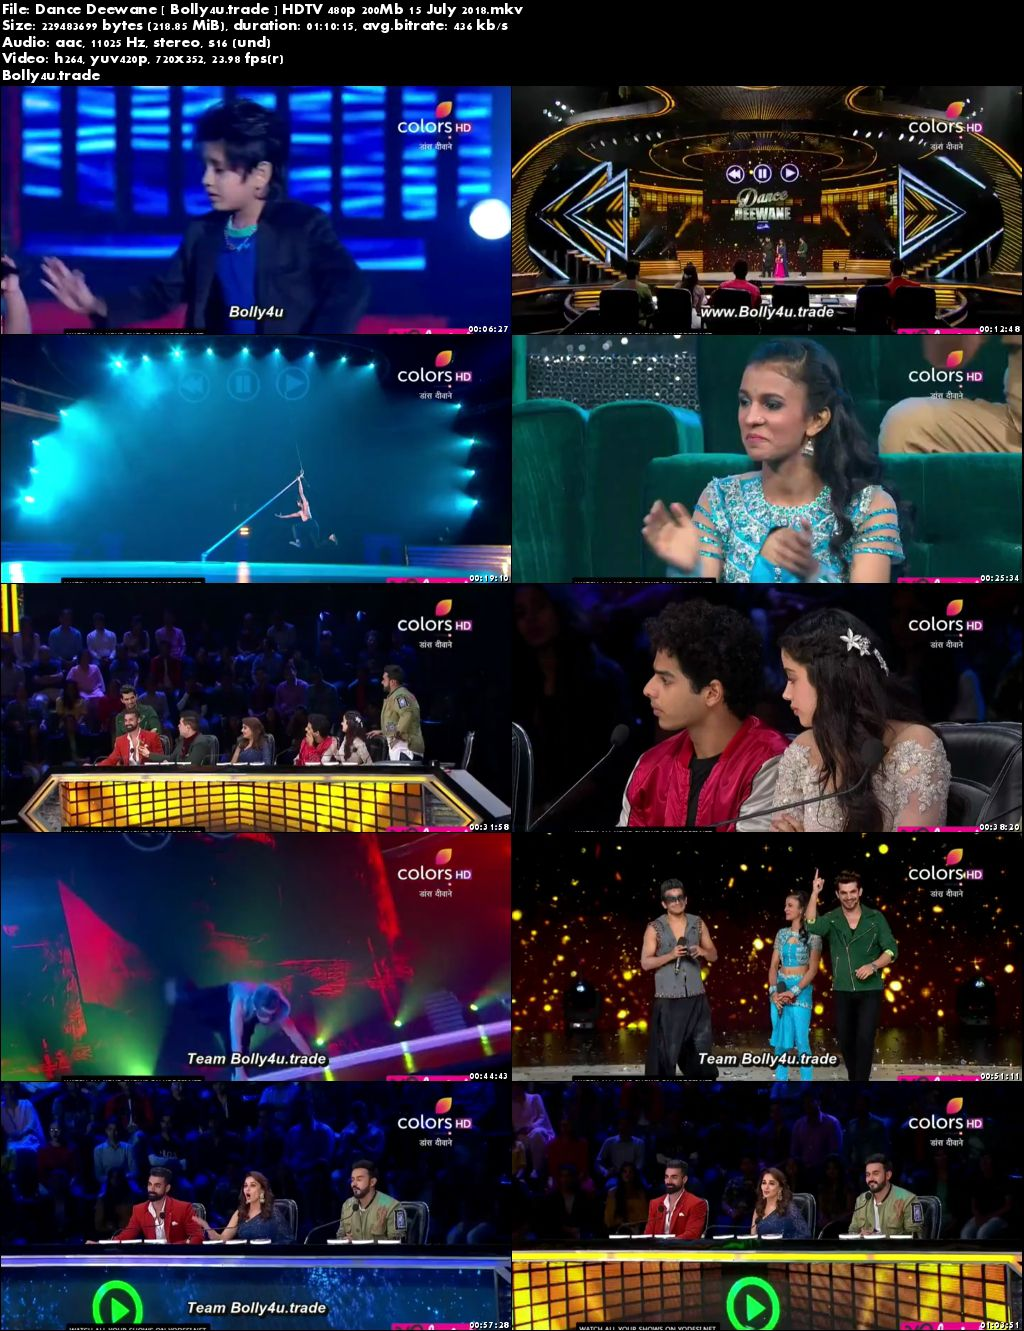 Dance Deewane 2018 HDTV 480p 200Mb 15 July 2018 Download